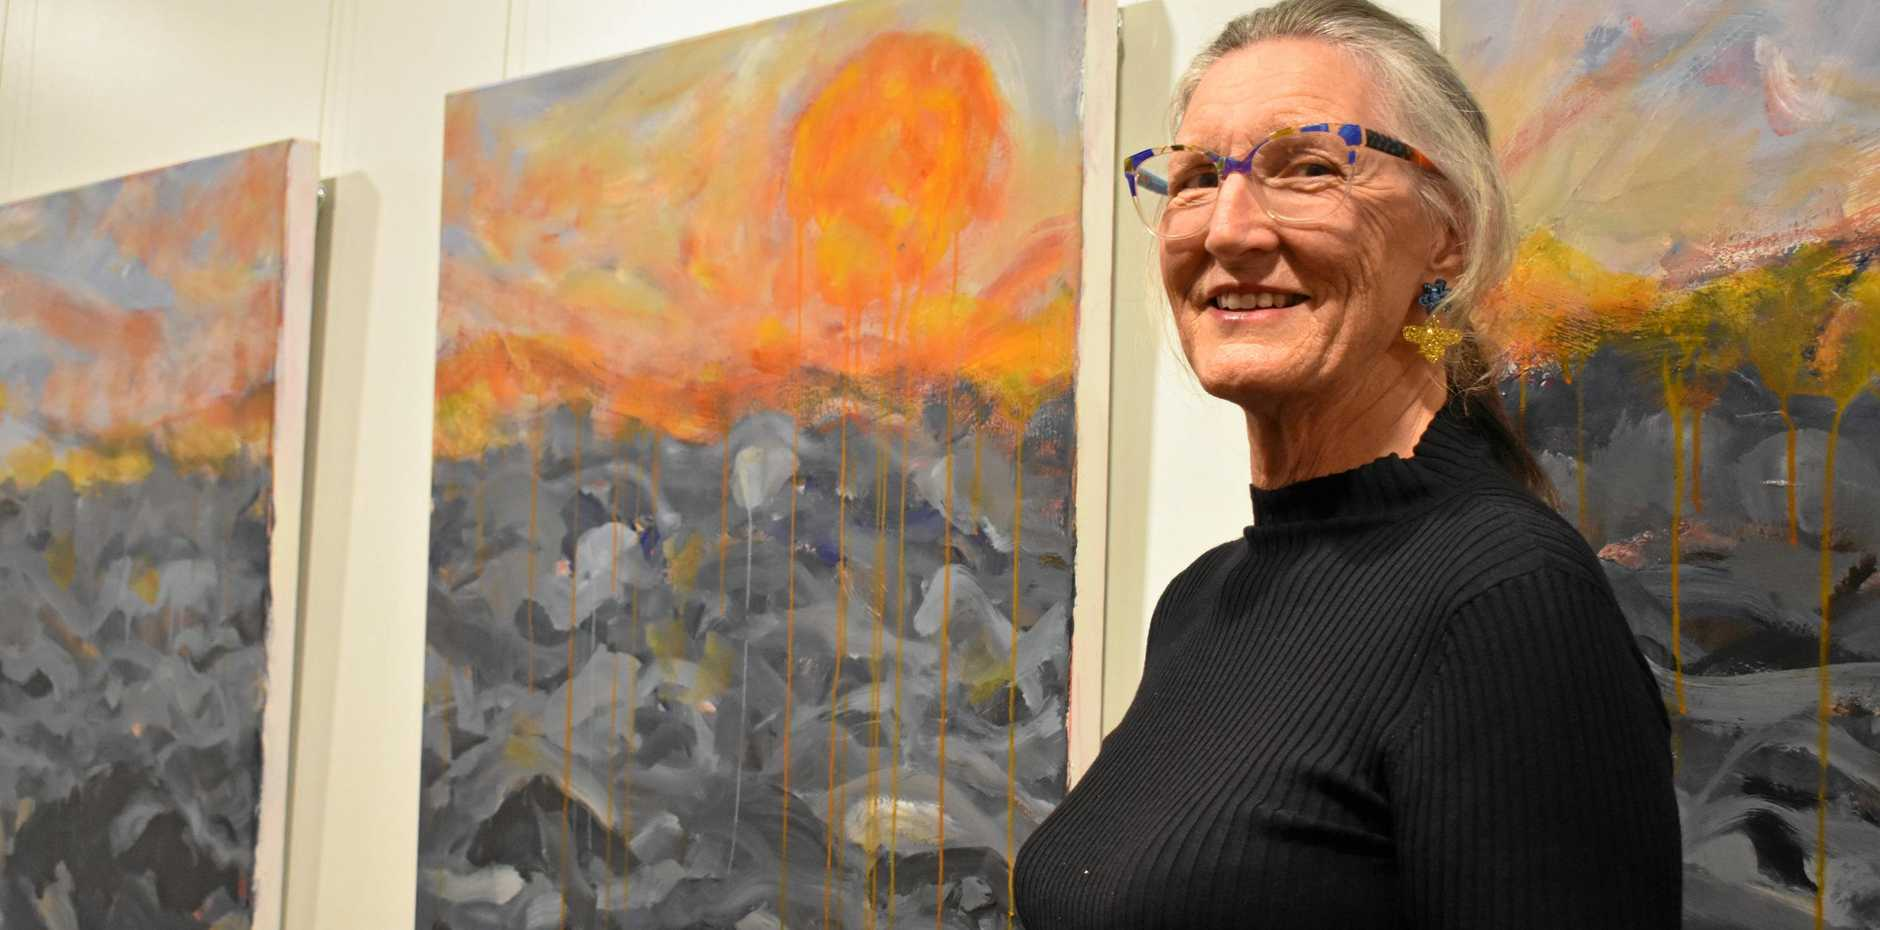 LOCAL ART: Barbara Hancock standing with her latest piece The Brigalow Sunset at the Heading in the Same Direction art exhibition in Roma.